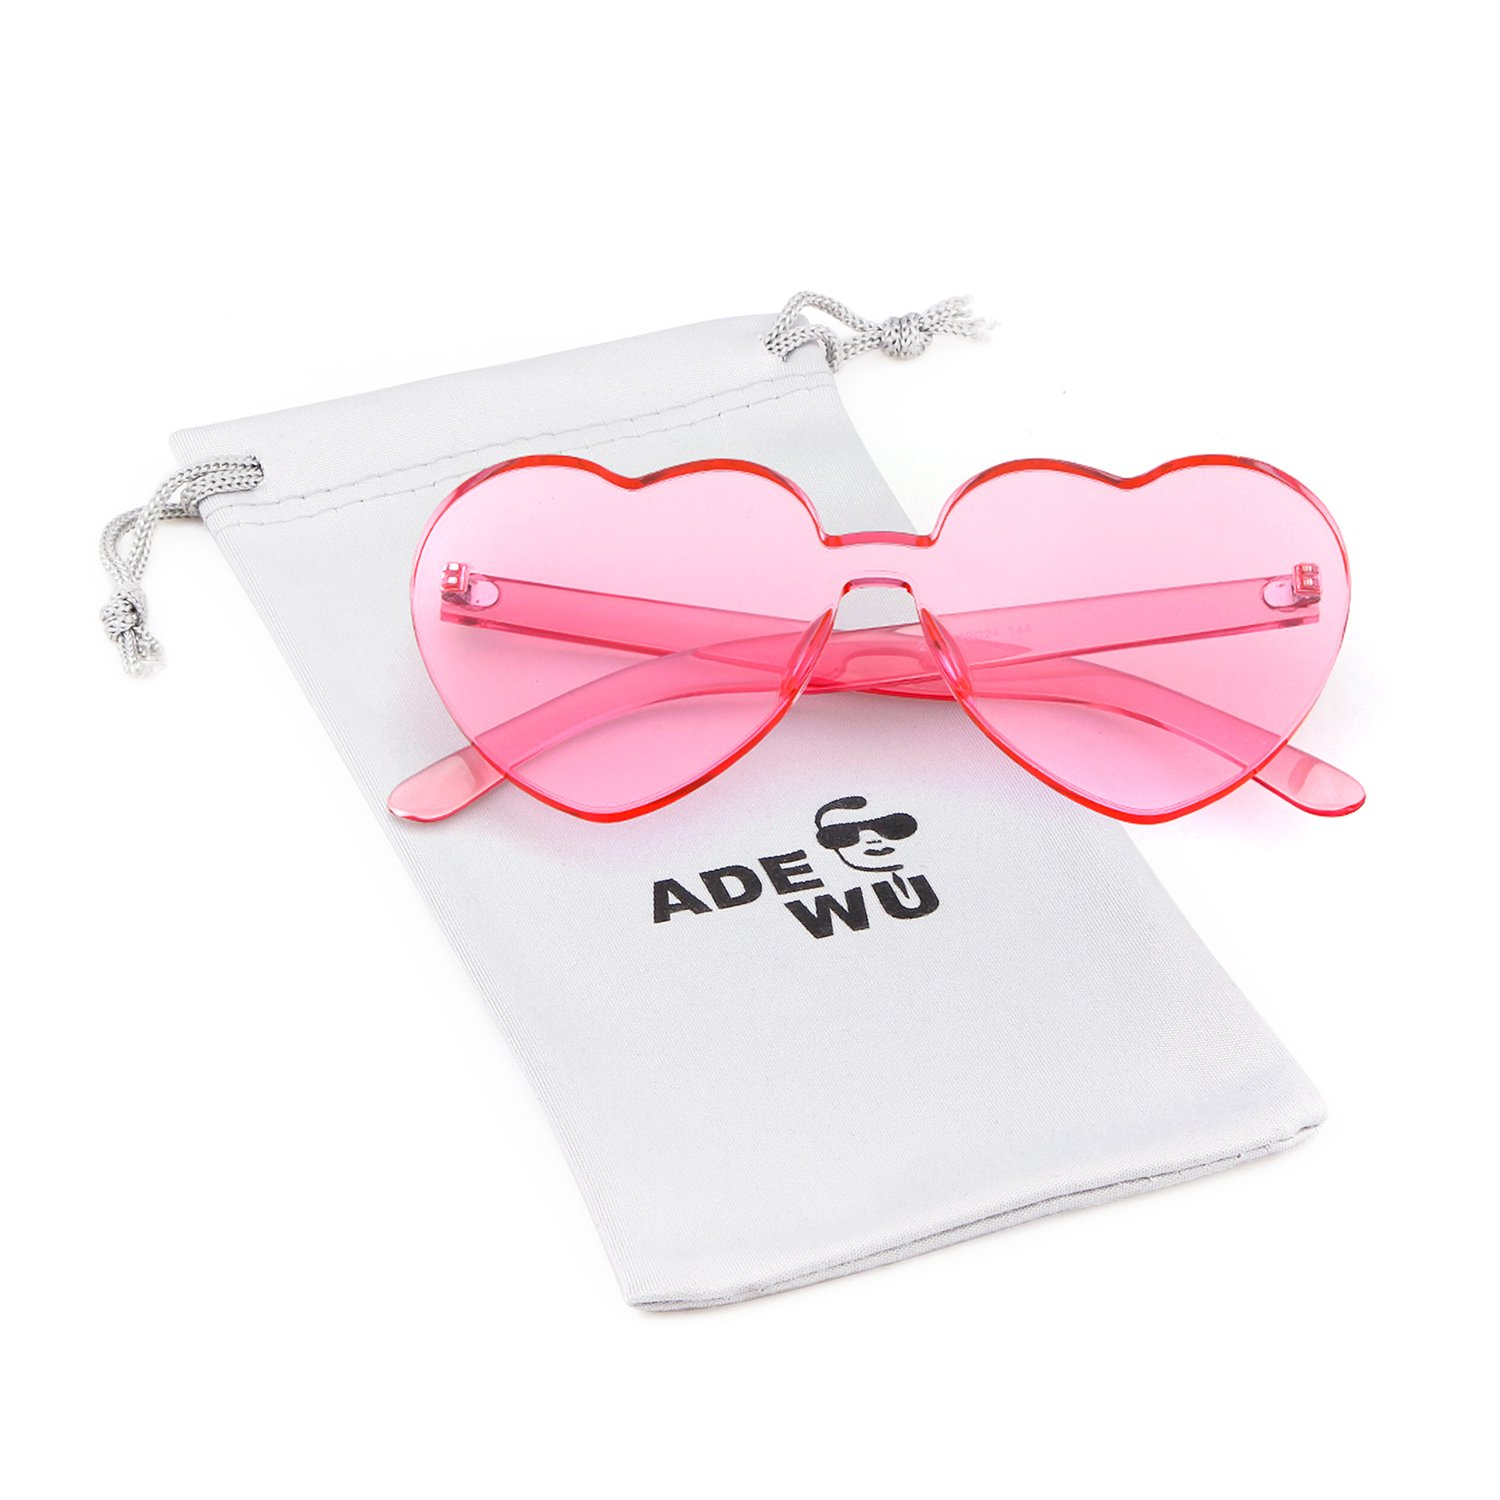 646f80dab99 ADEWU Love Heart Sunglasses Women Girl Rimless Candy Color One Piece ...